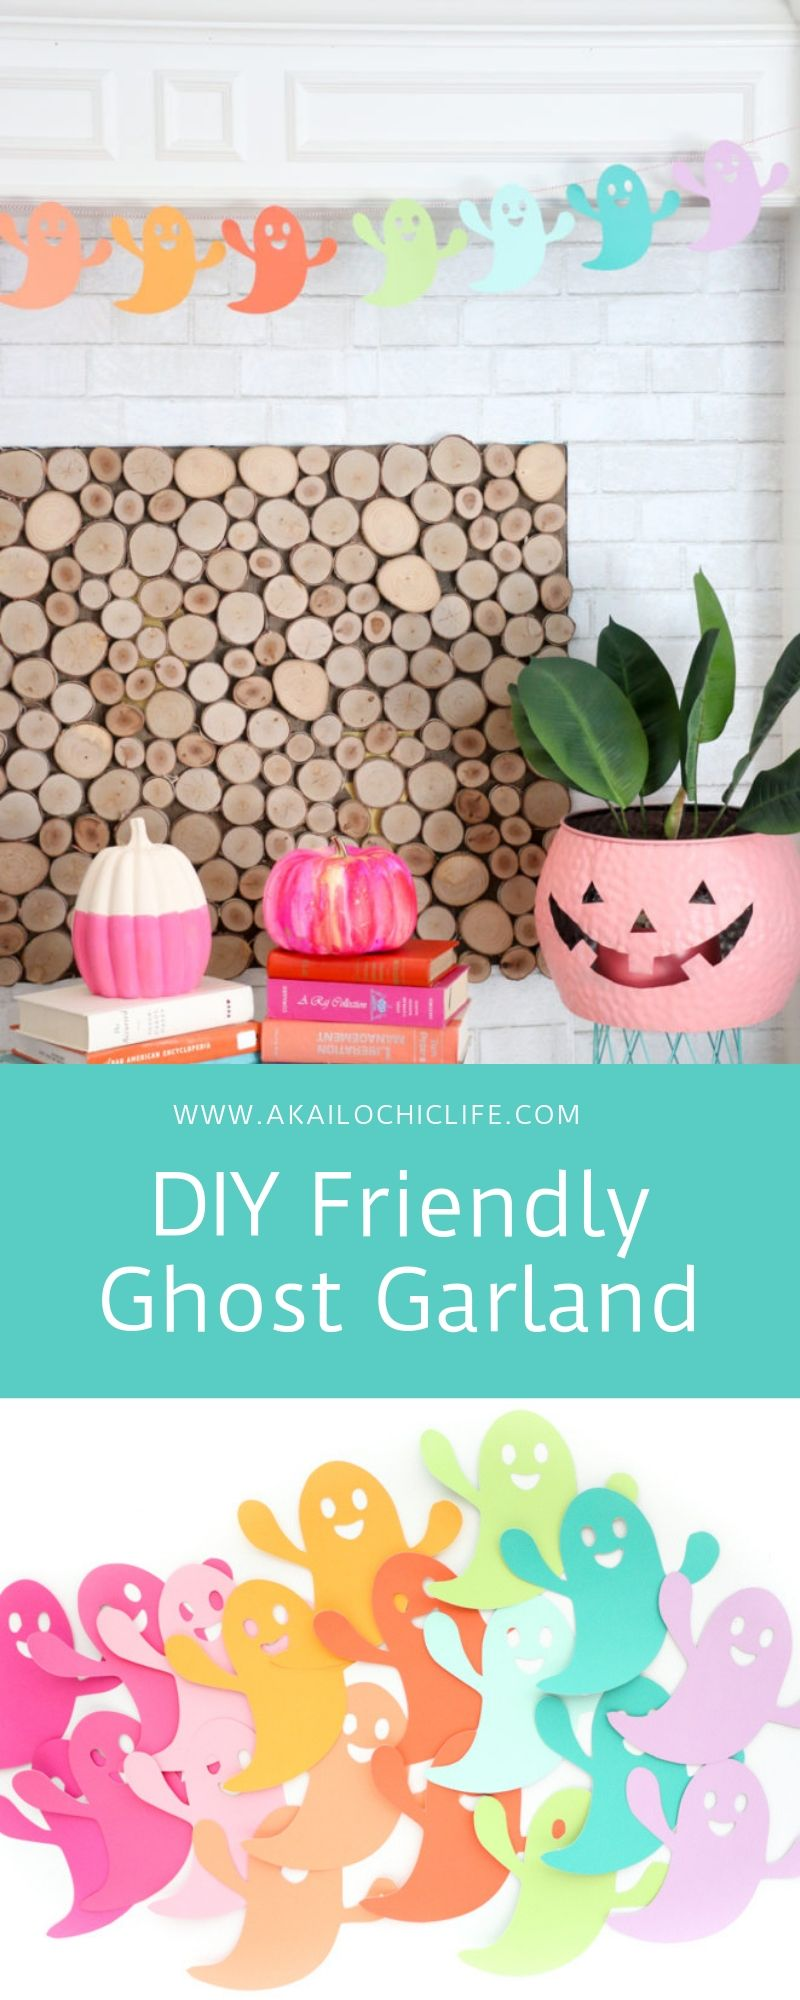 Woven mantle clipart clip art free download DIY Friendly Ghost Garland and Halloween Mantle - A Kailo ... clip art free download